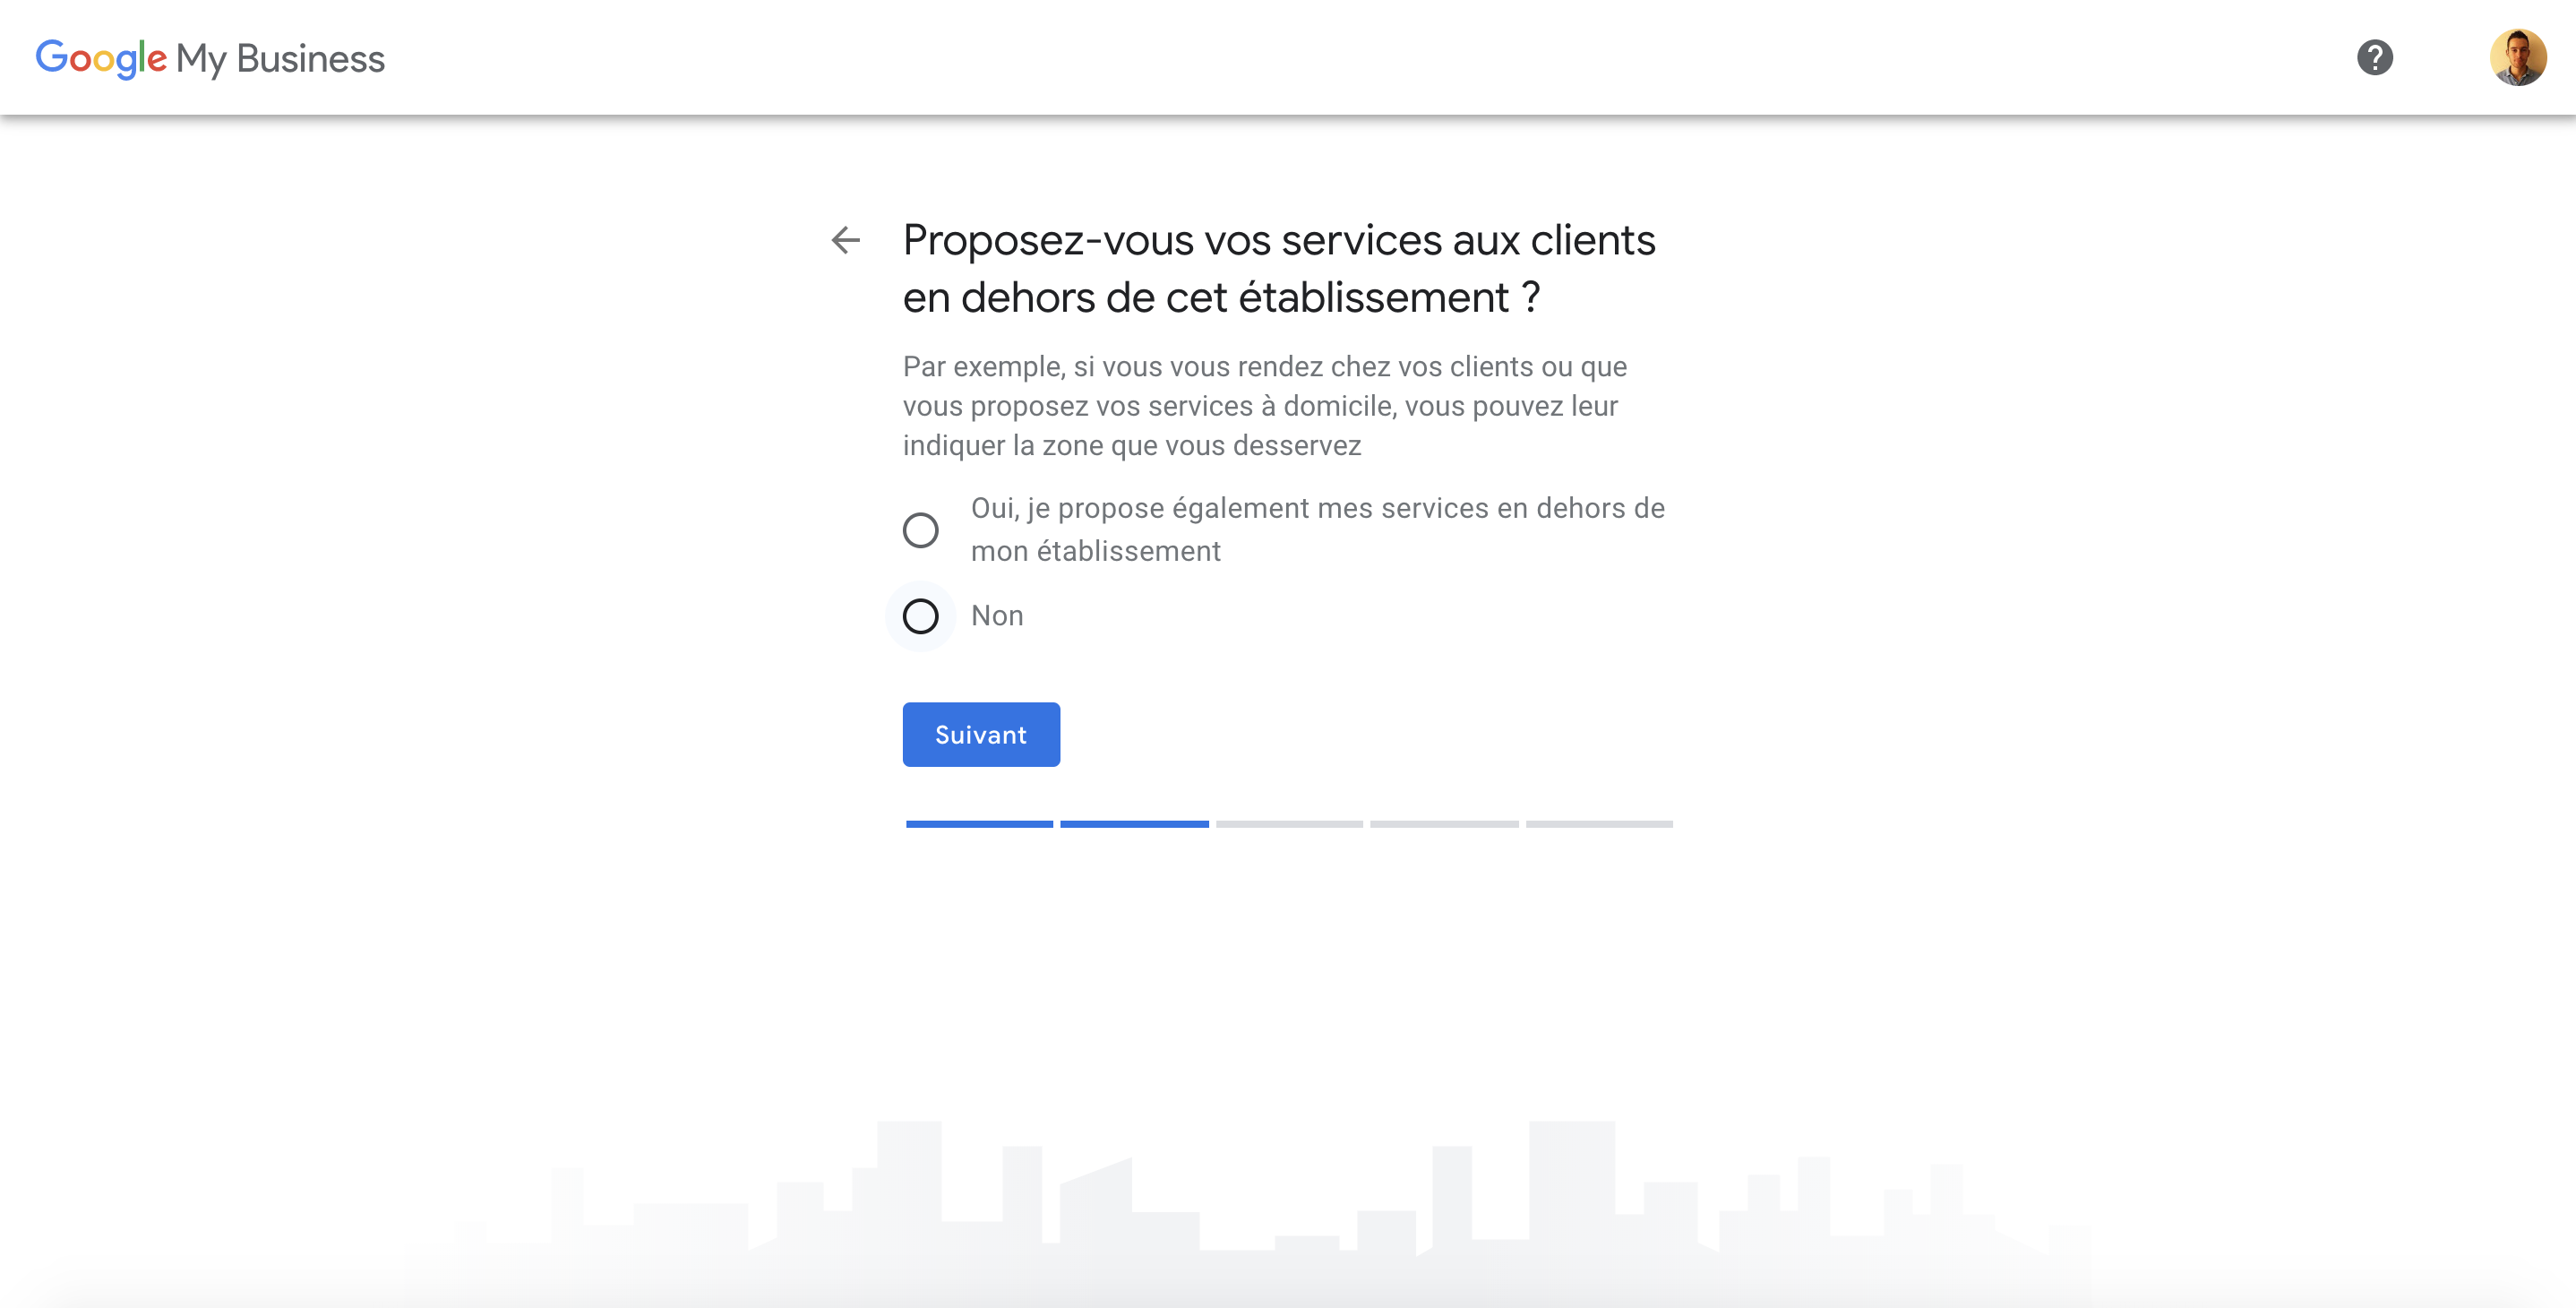 inscription-fiche-google-my-business-services-clients